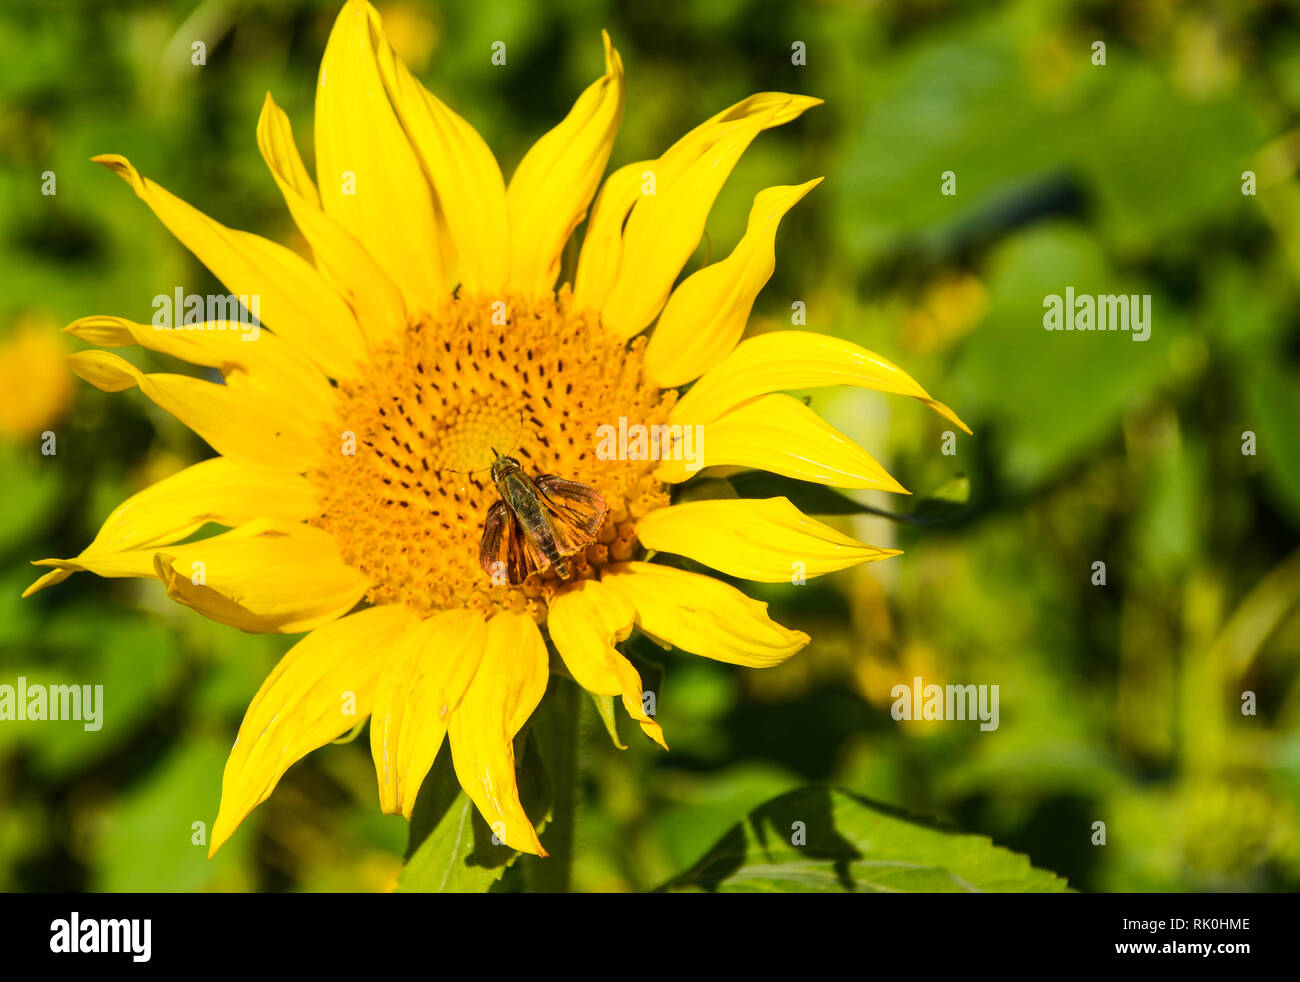 Yellow sunflower with insect on blurred background - Stock Image